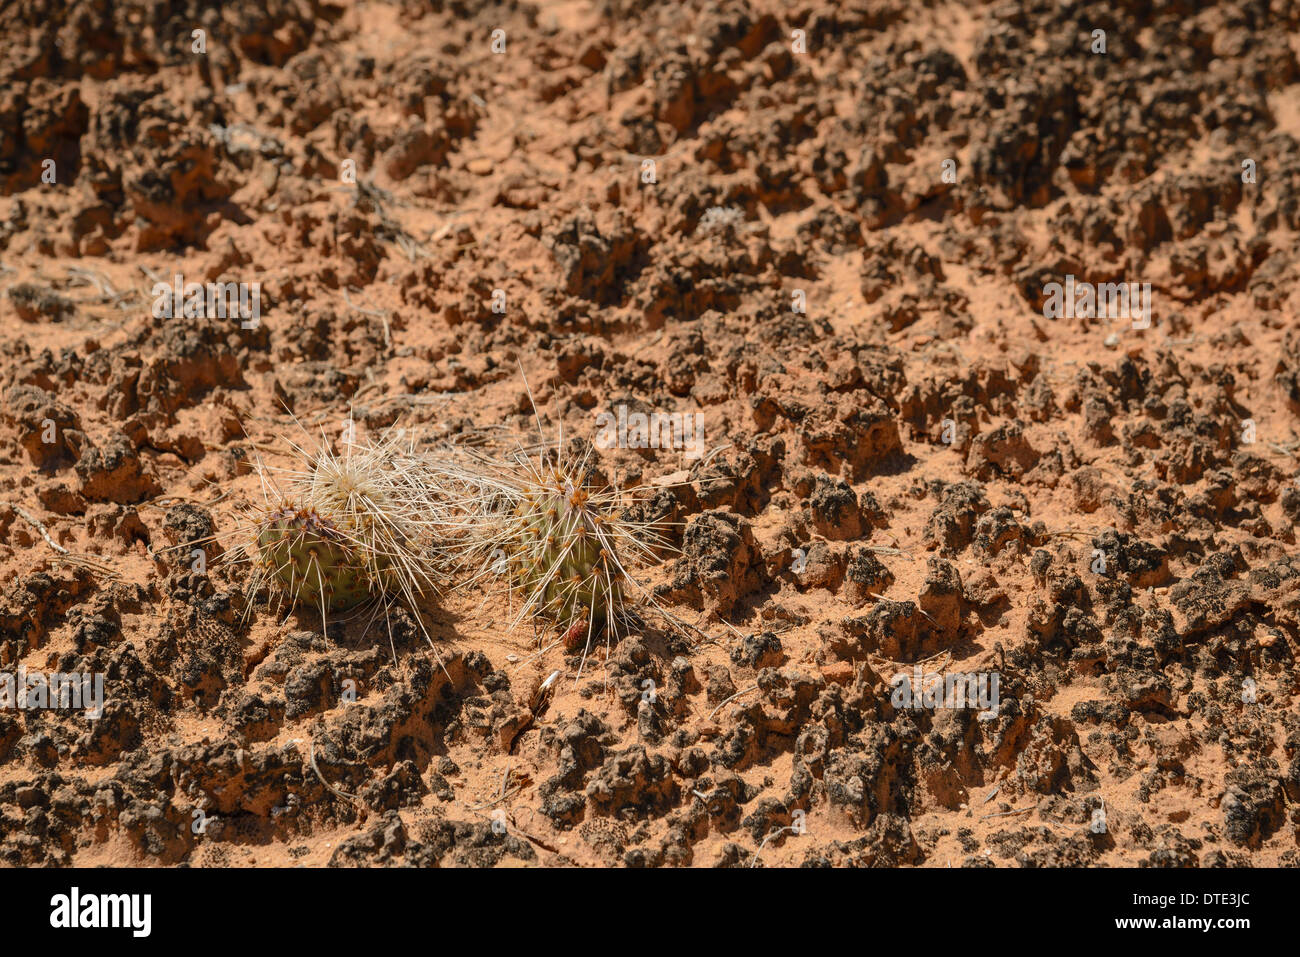 Biological soil crust, The Needles section of Canyonlands National Park, Utah, USA - Stock Image